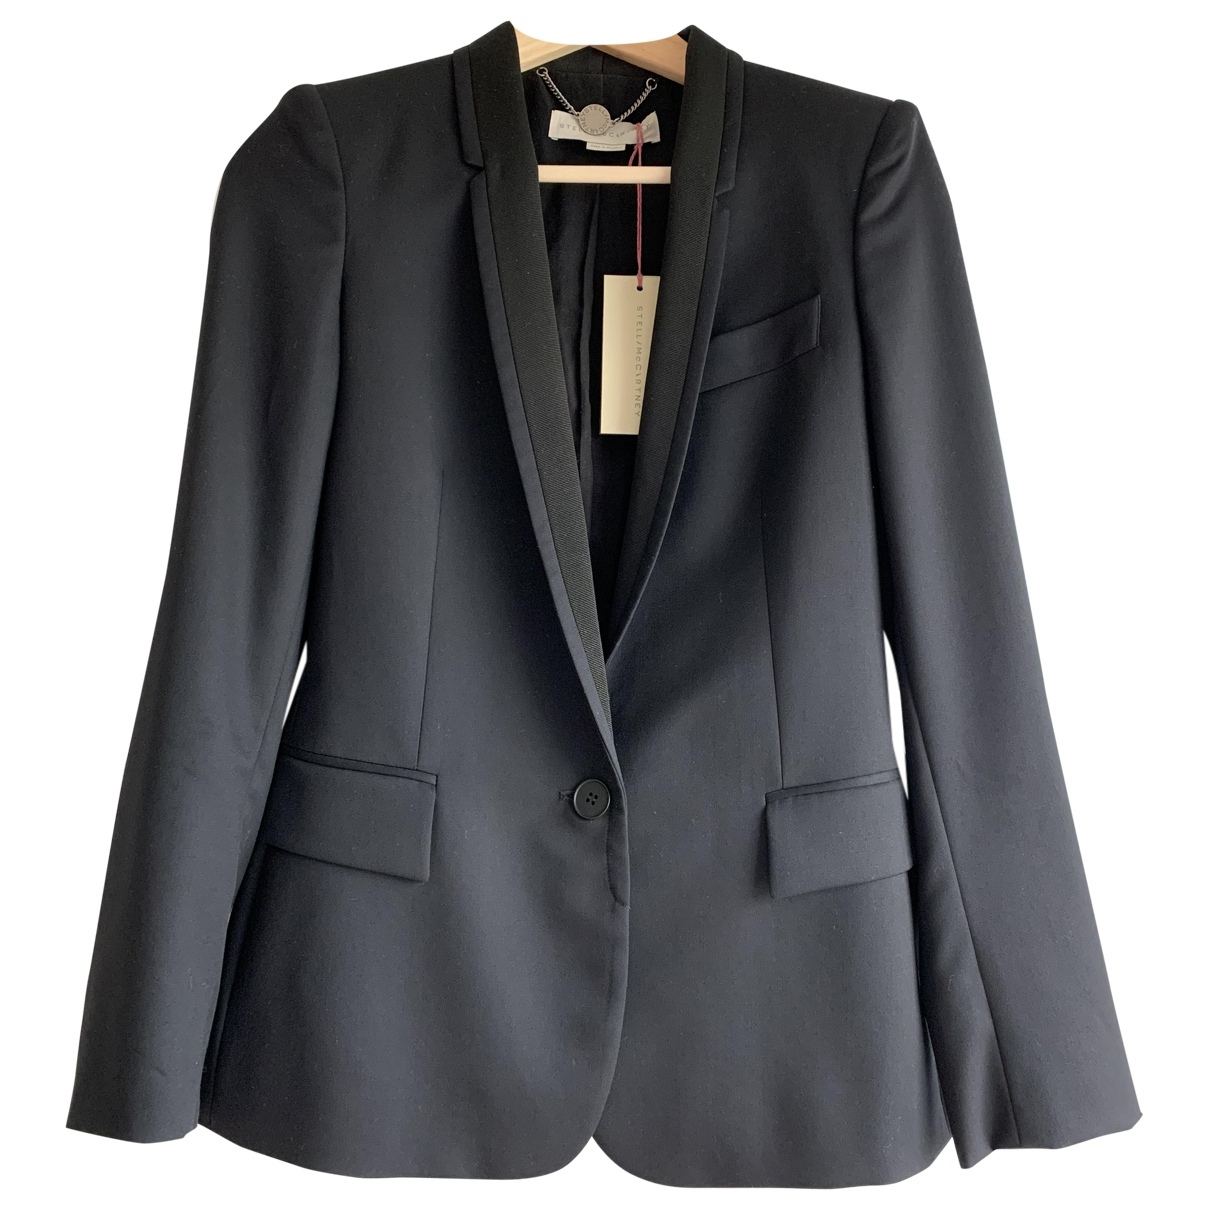 Stella Mccartney \N Black Wool jacket for Women 36 IT